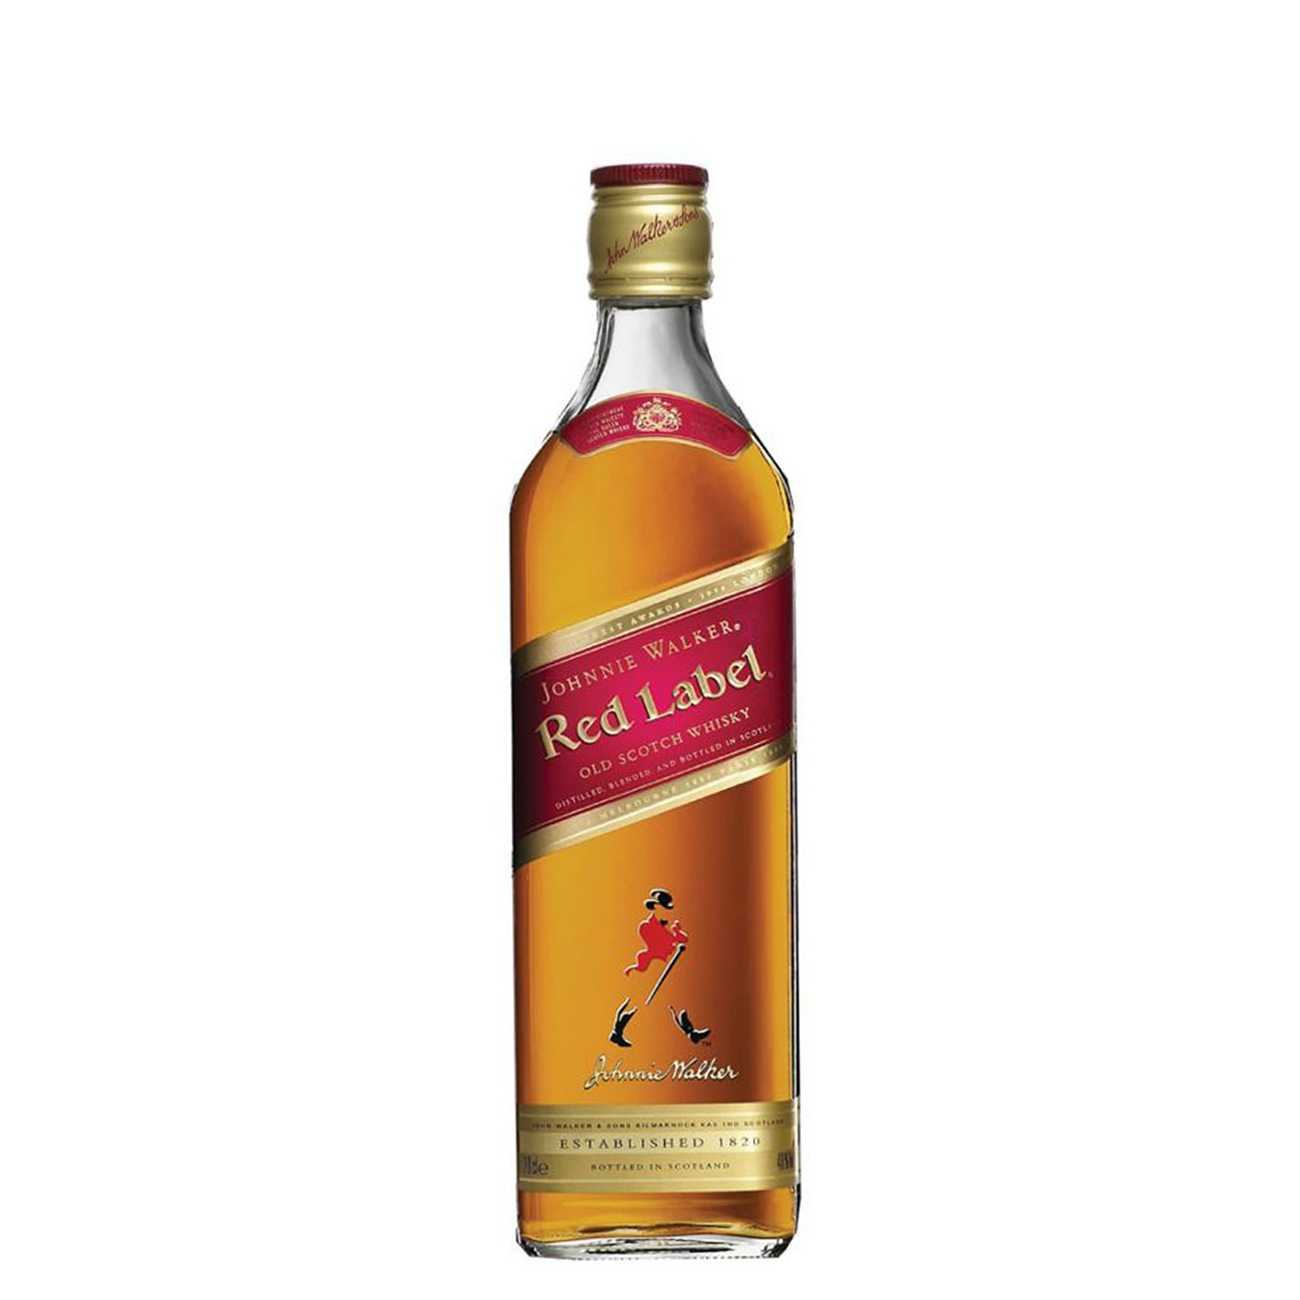 Whisky scotian, RED LABEL 500 ML, Johnnie Walker